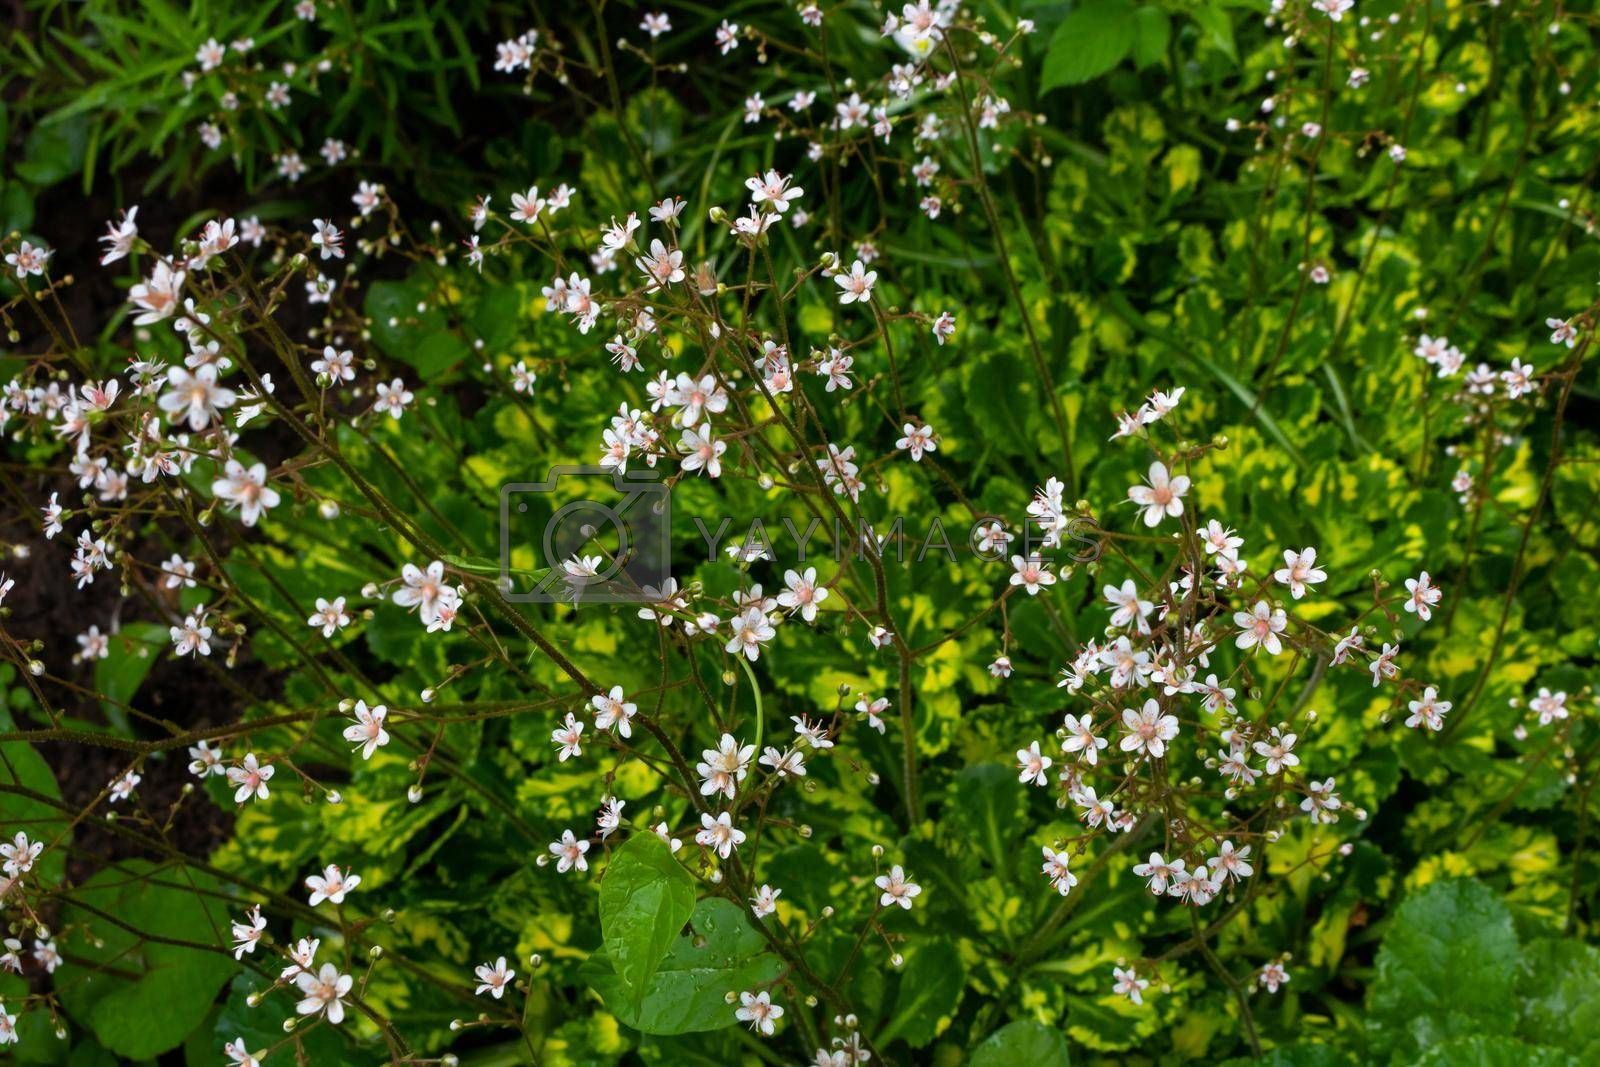 Small white flowers in field on green grass background. Soft focus by lapushka62